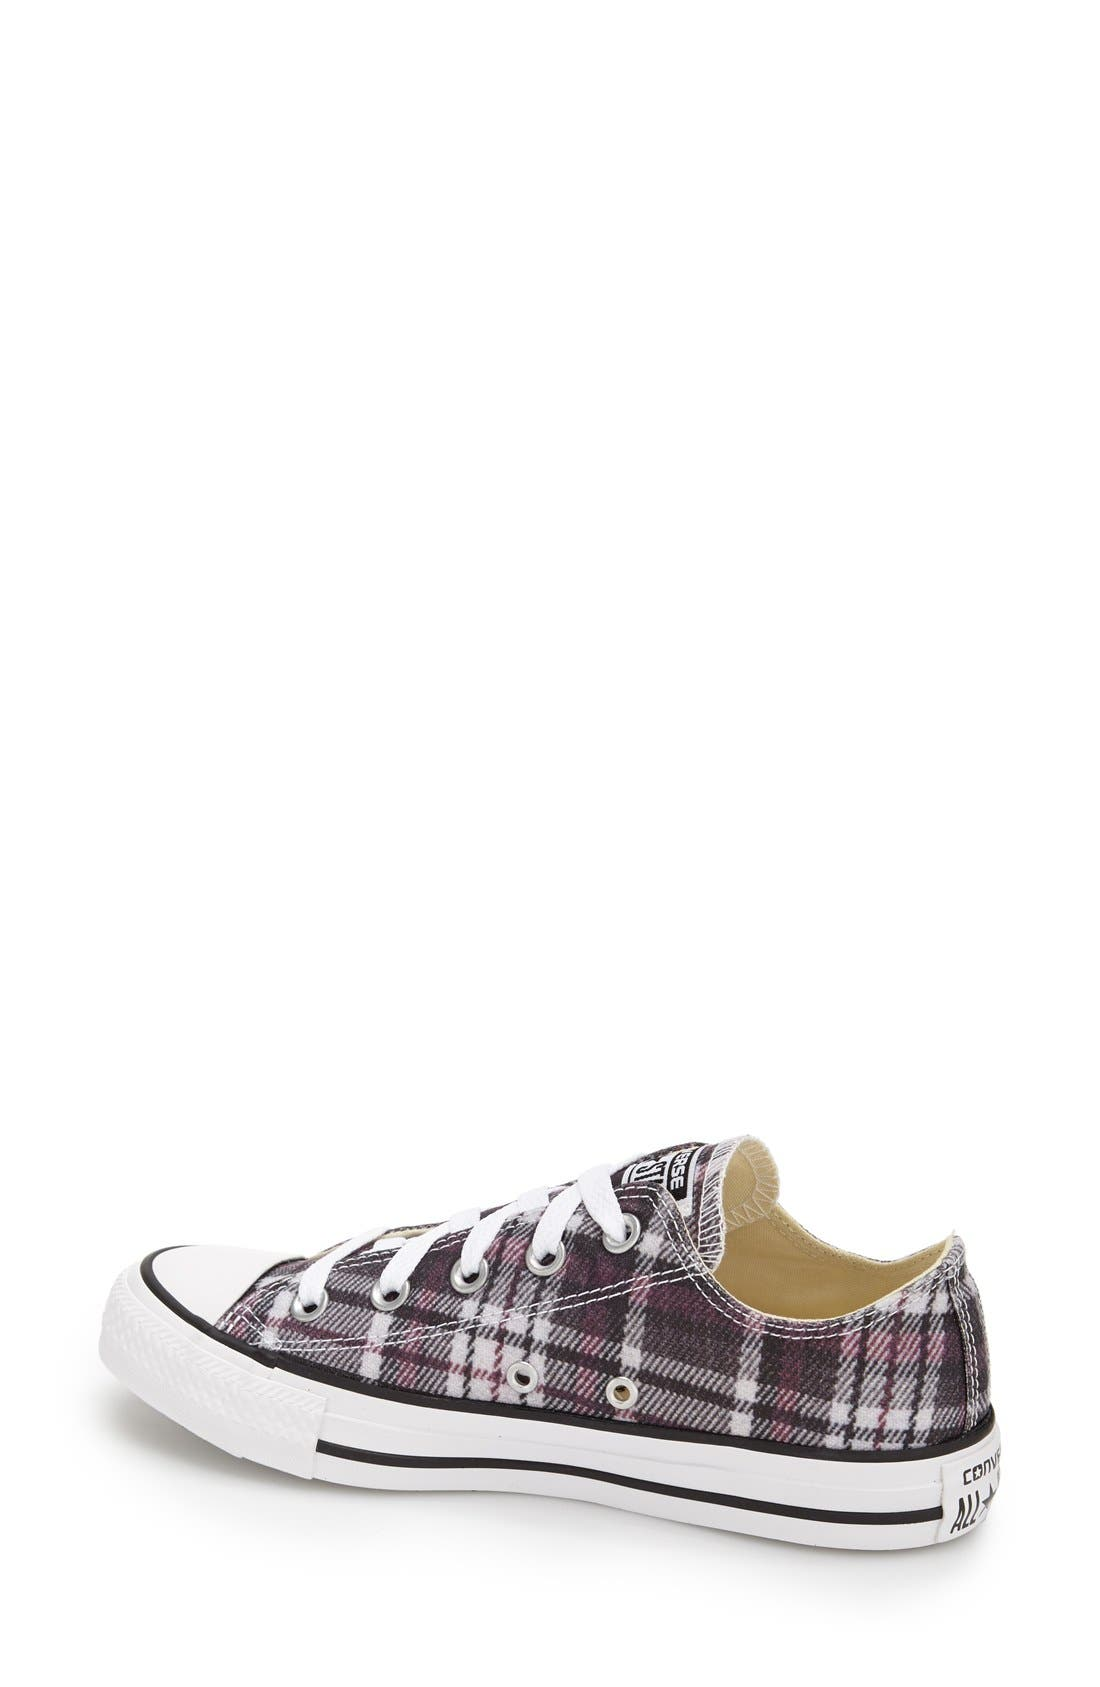 Alternate Image 2  - Converse Chuck Taylor® All Star® Plaid Low Top Sneaker (Women)